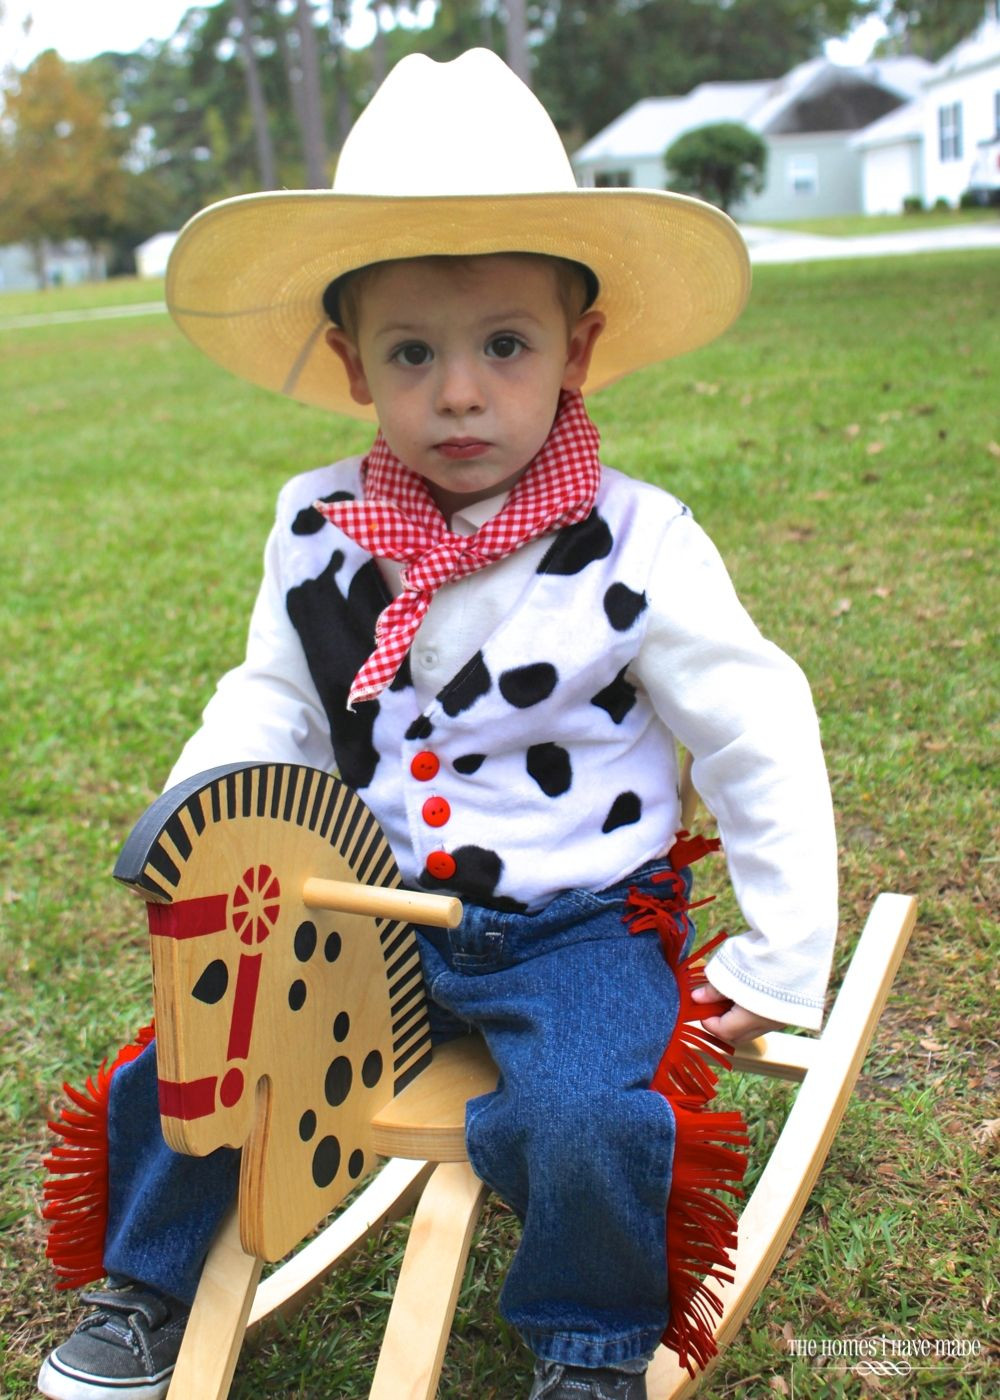 Best ideas about DIY Toddler Cowboy Costume . Save or Pin Toddler Cowboy Costume Now.